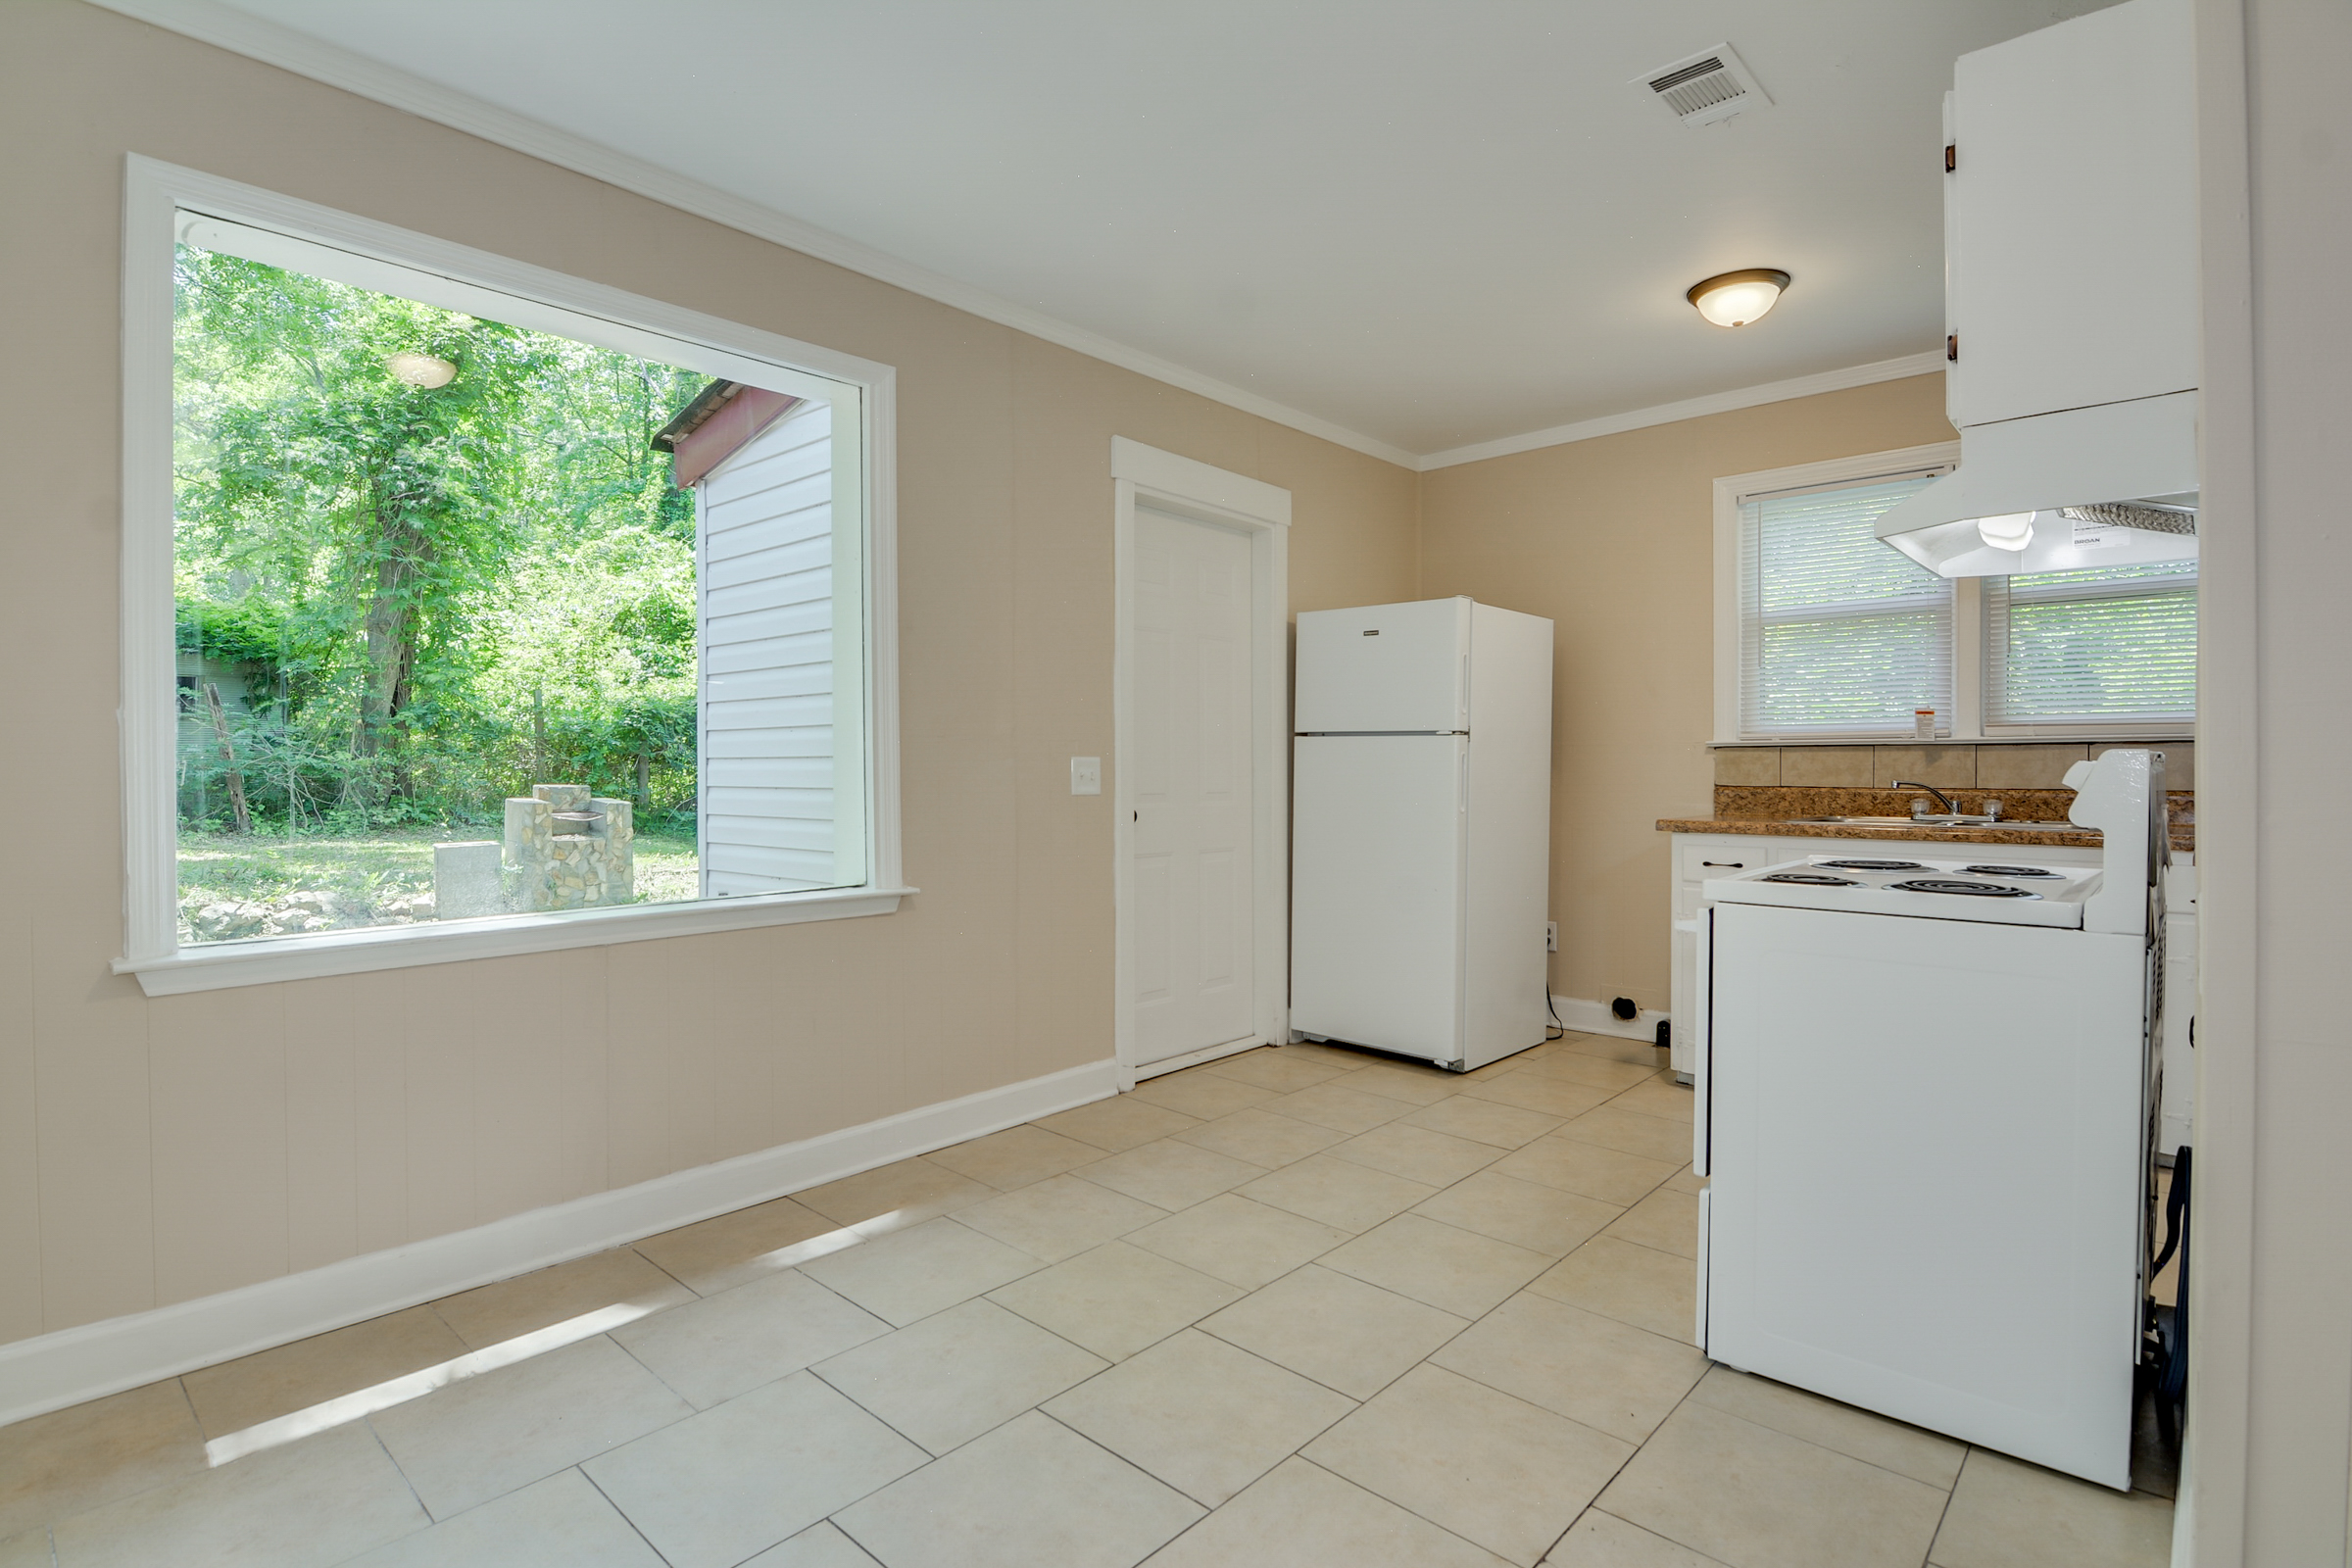 Sweet 2br Home With Updates